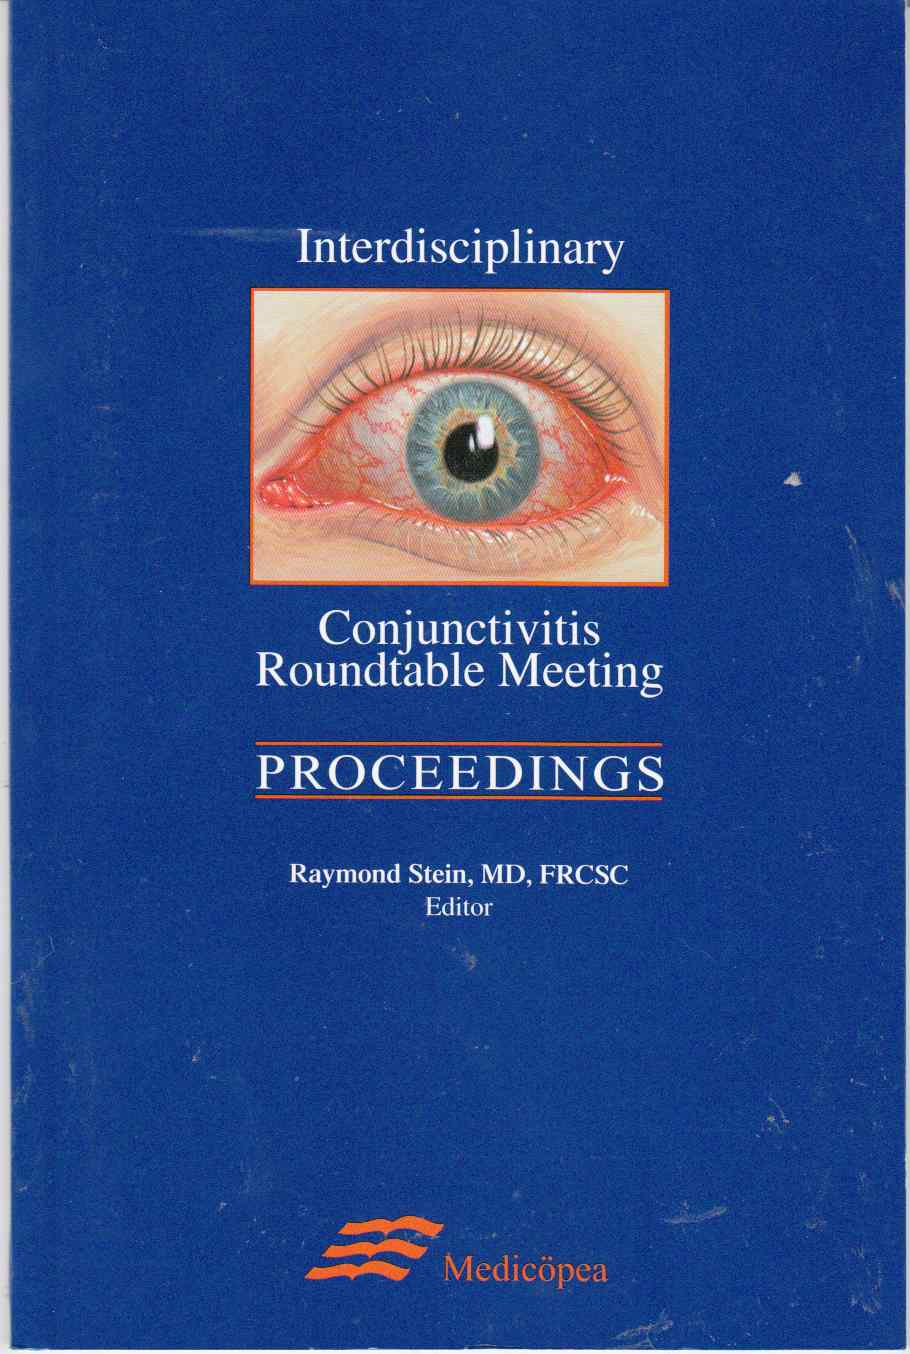 Image for Proceedings of the Interdisciplinary Conjunctivitis Roundtable Meeting